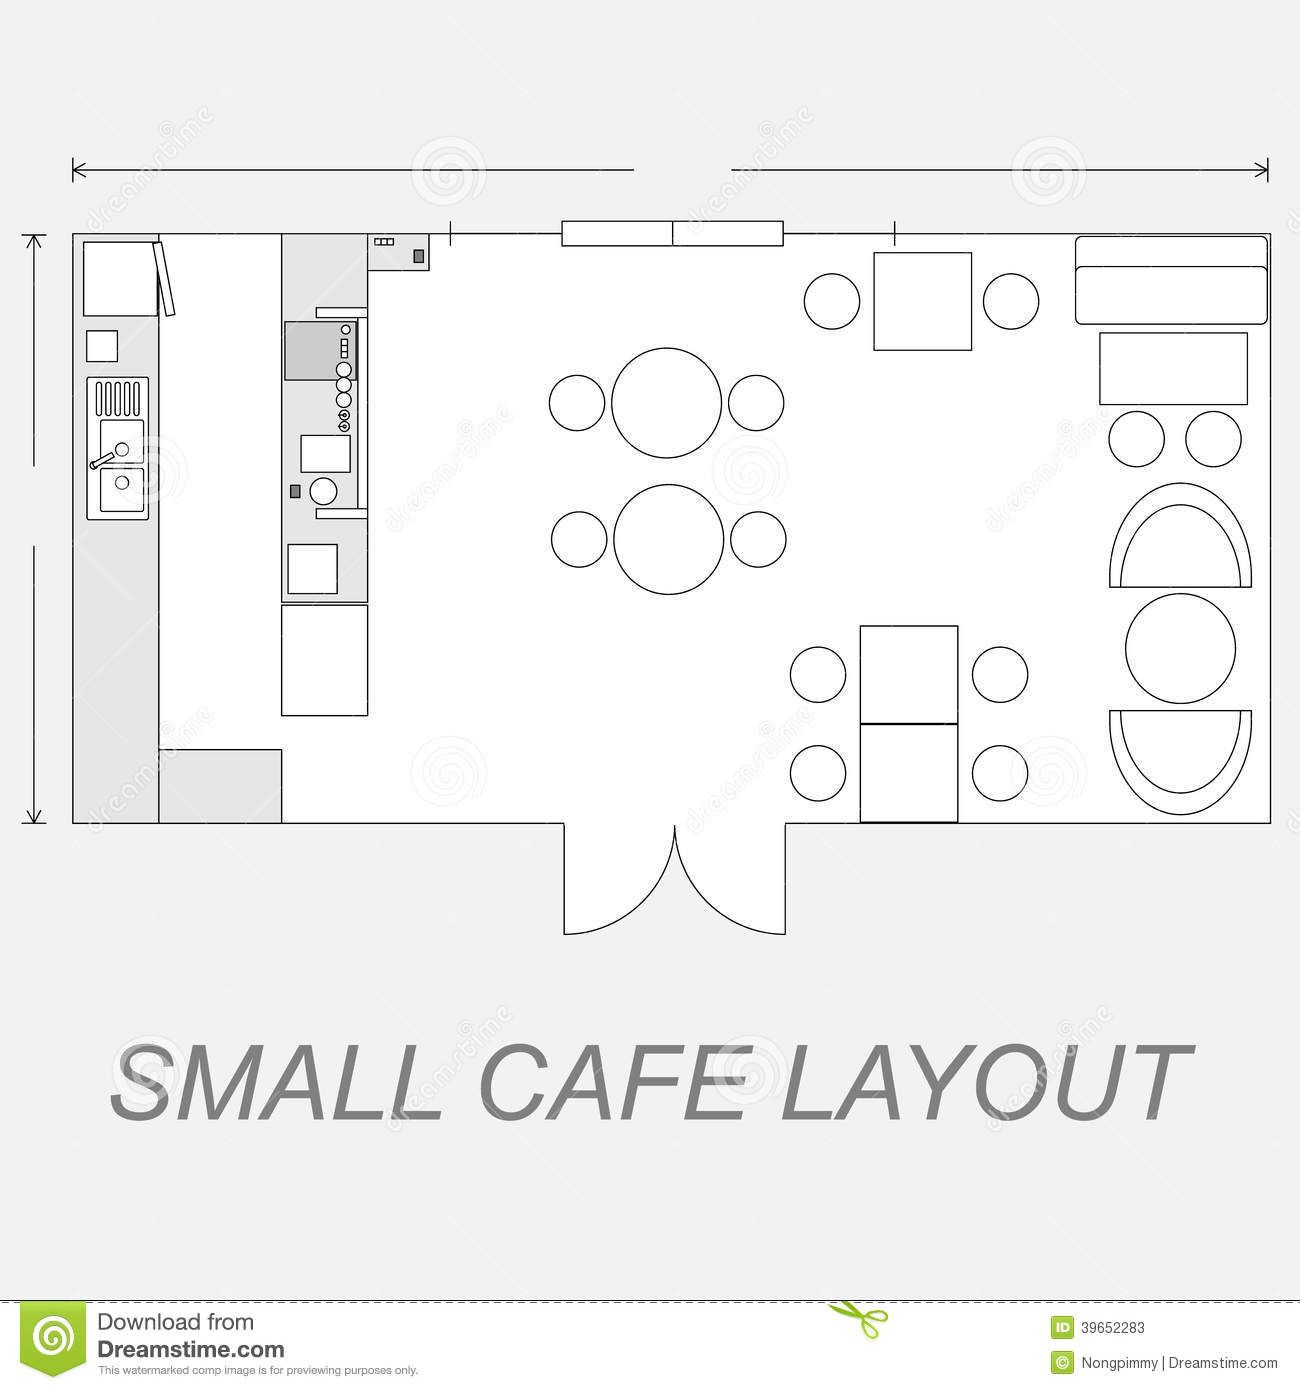 Small Cafe Layout Stock Vector